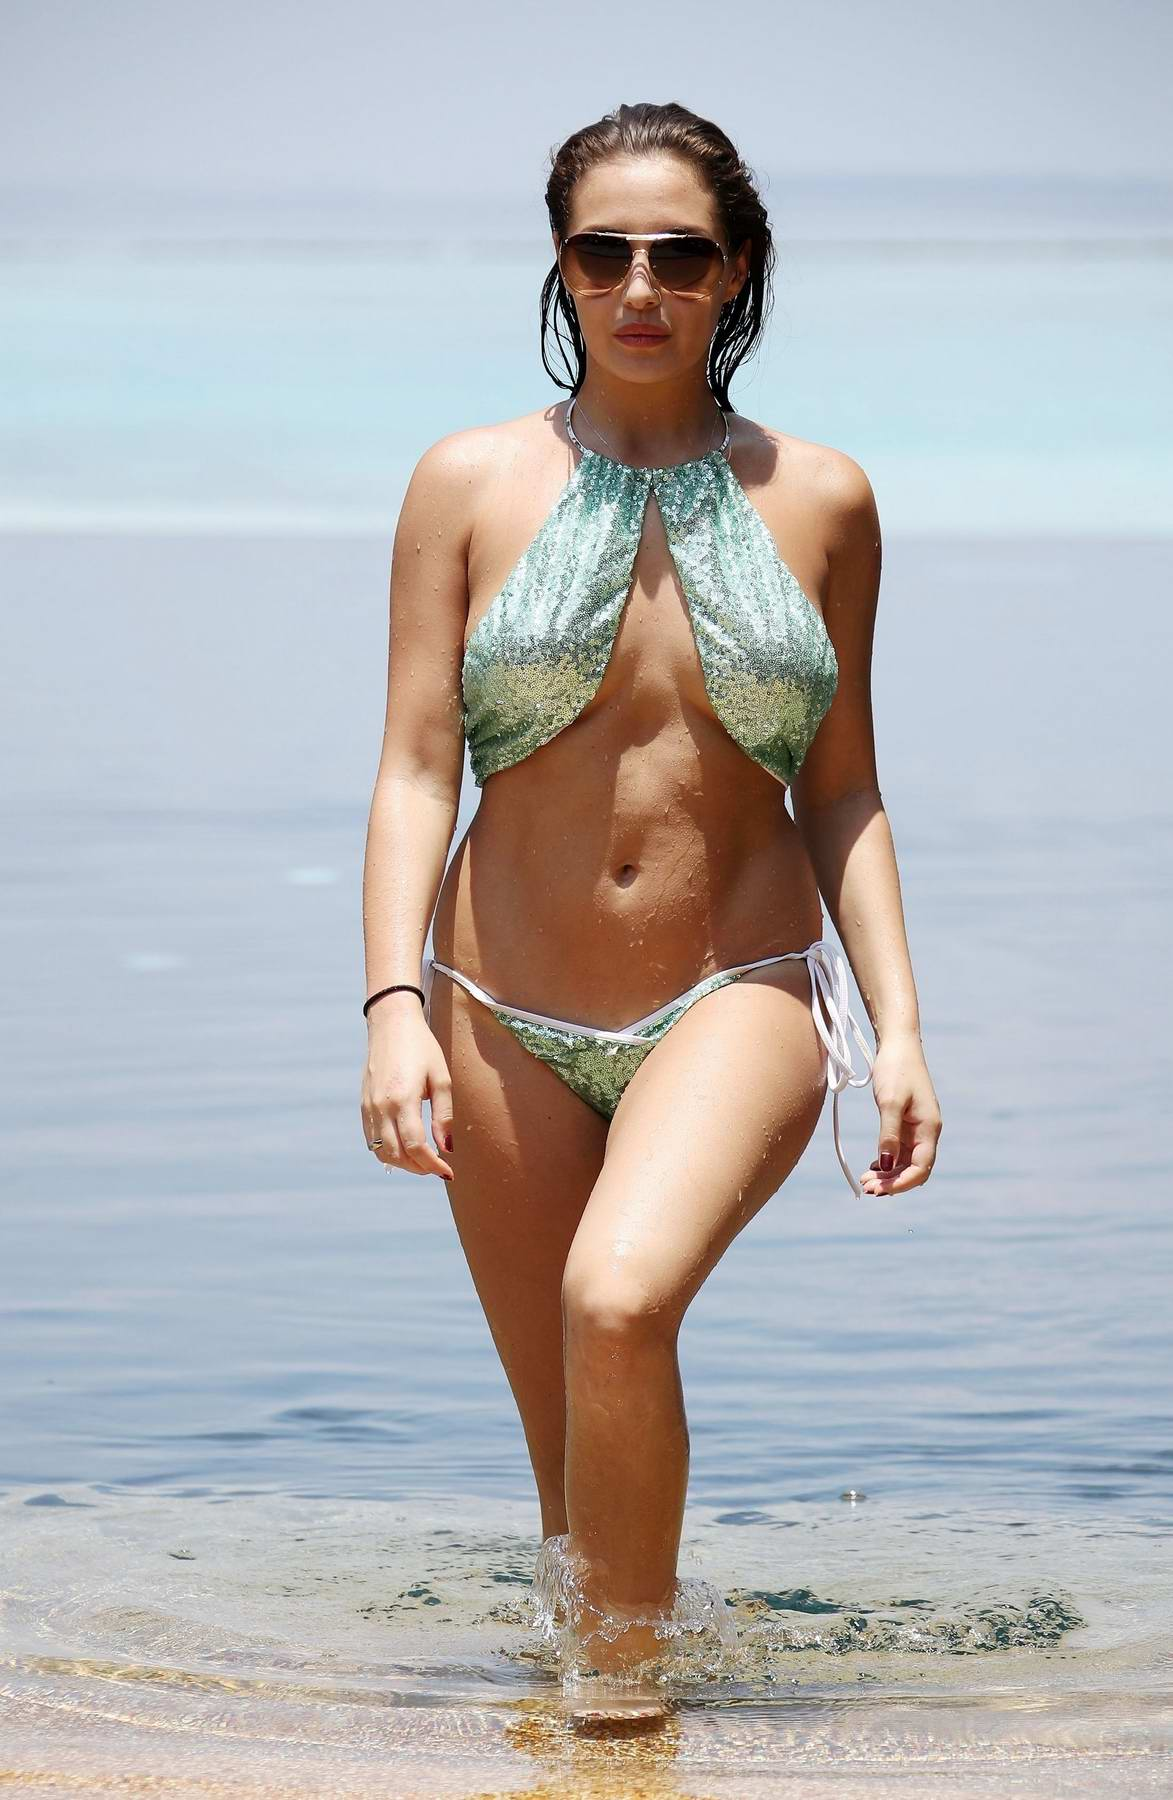 Chloe Goodman in a bikini enjoying herself on the beaches of Barbados